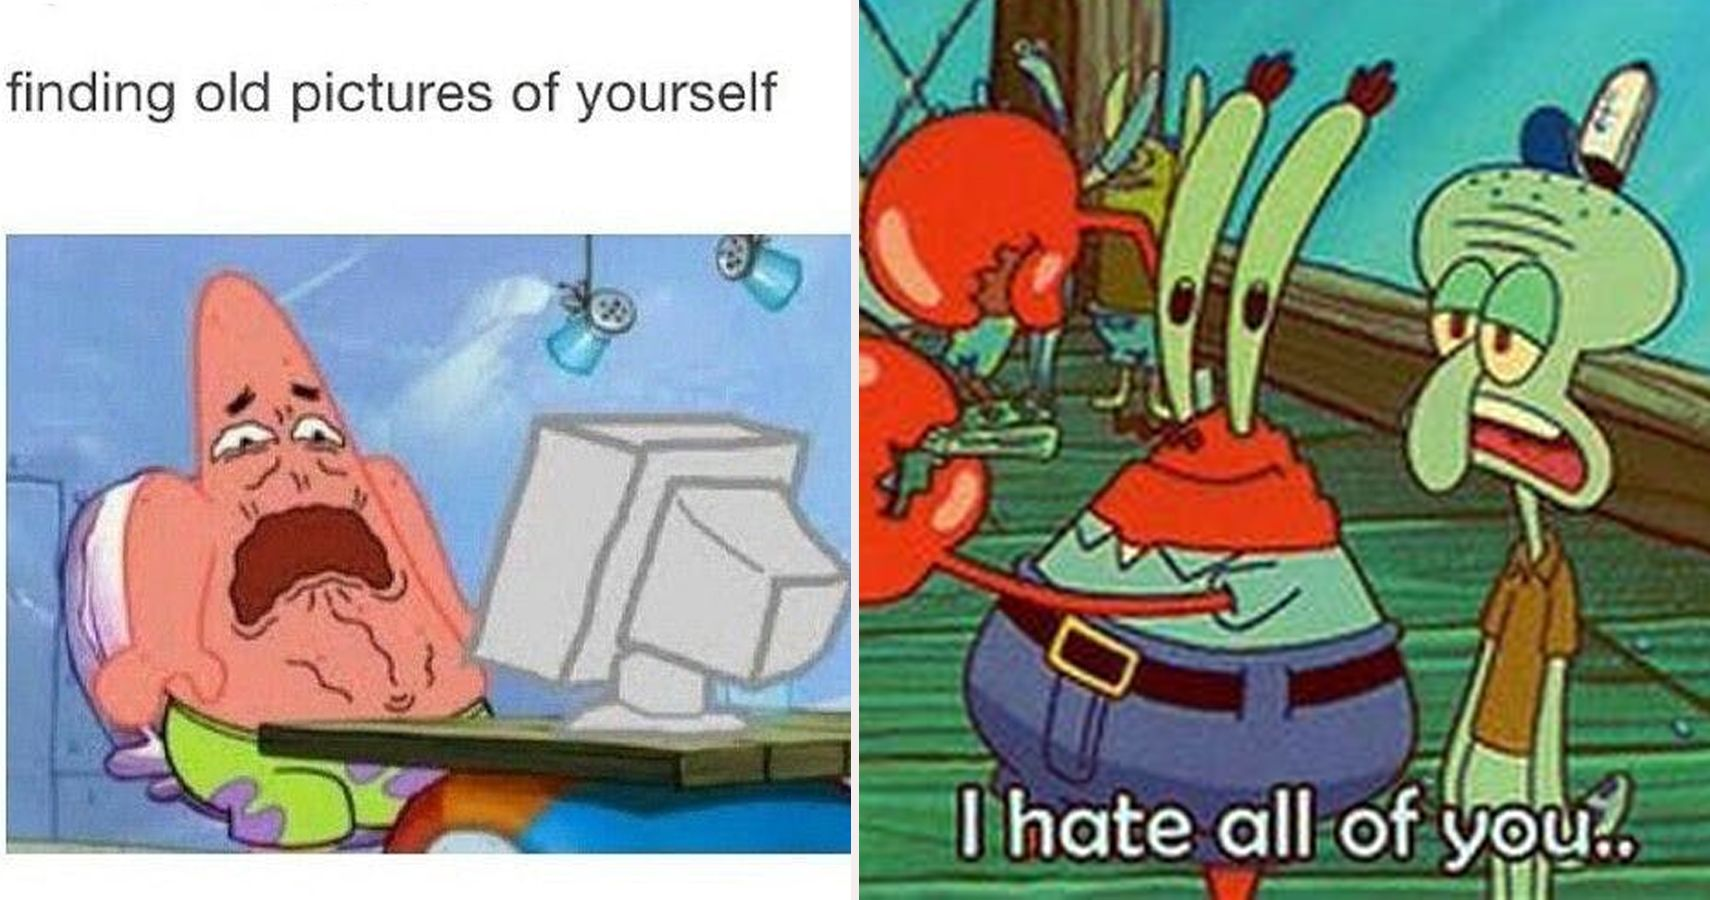 Hilariously relatable spongebob squarepants memes thegamer